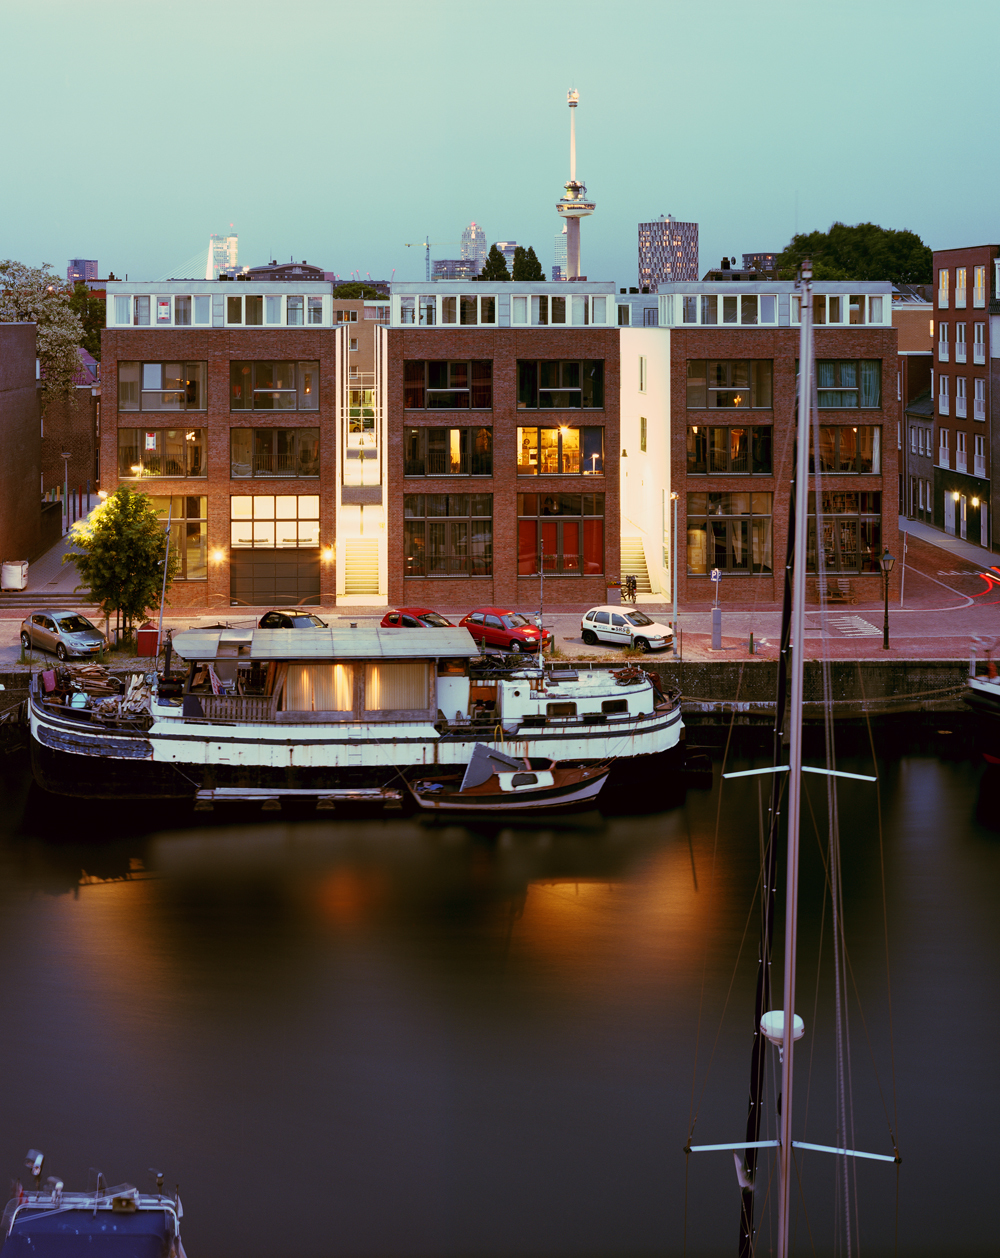 a strong new waterfront built of sturdy red brick (photo: Ruben Dario Kleimeer)